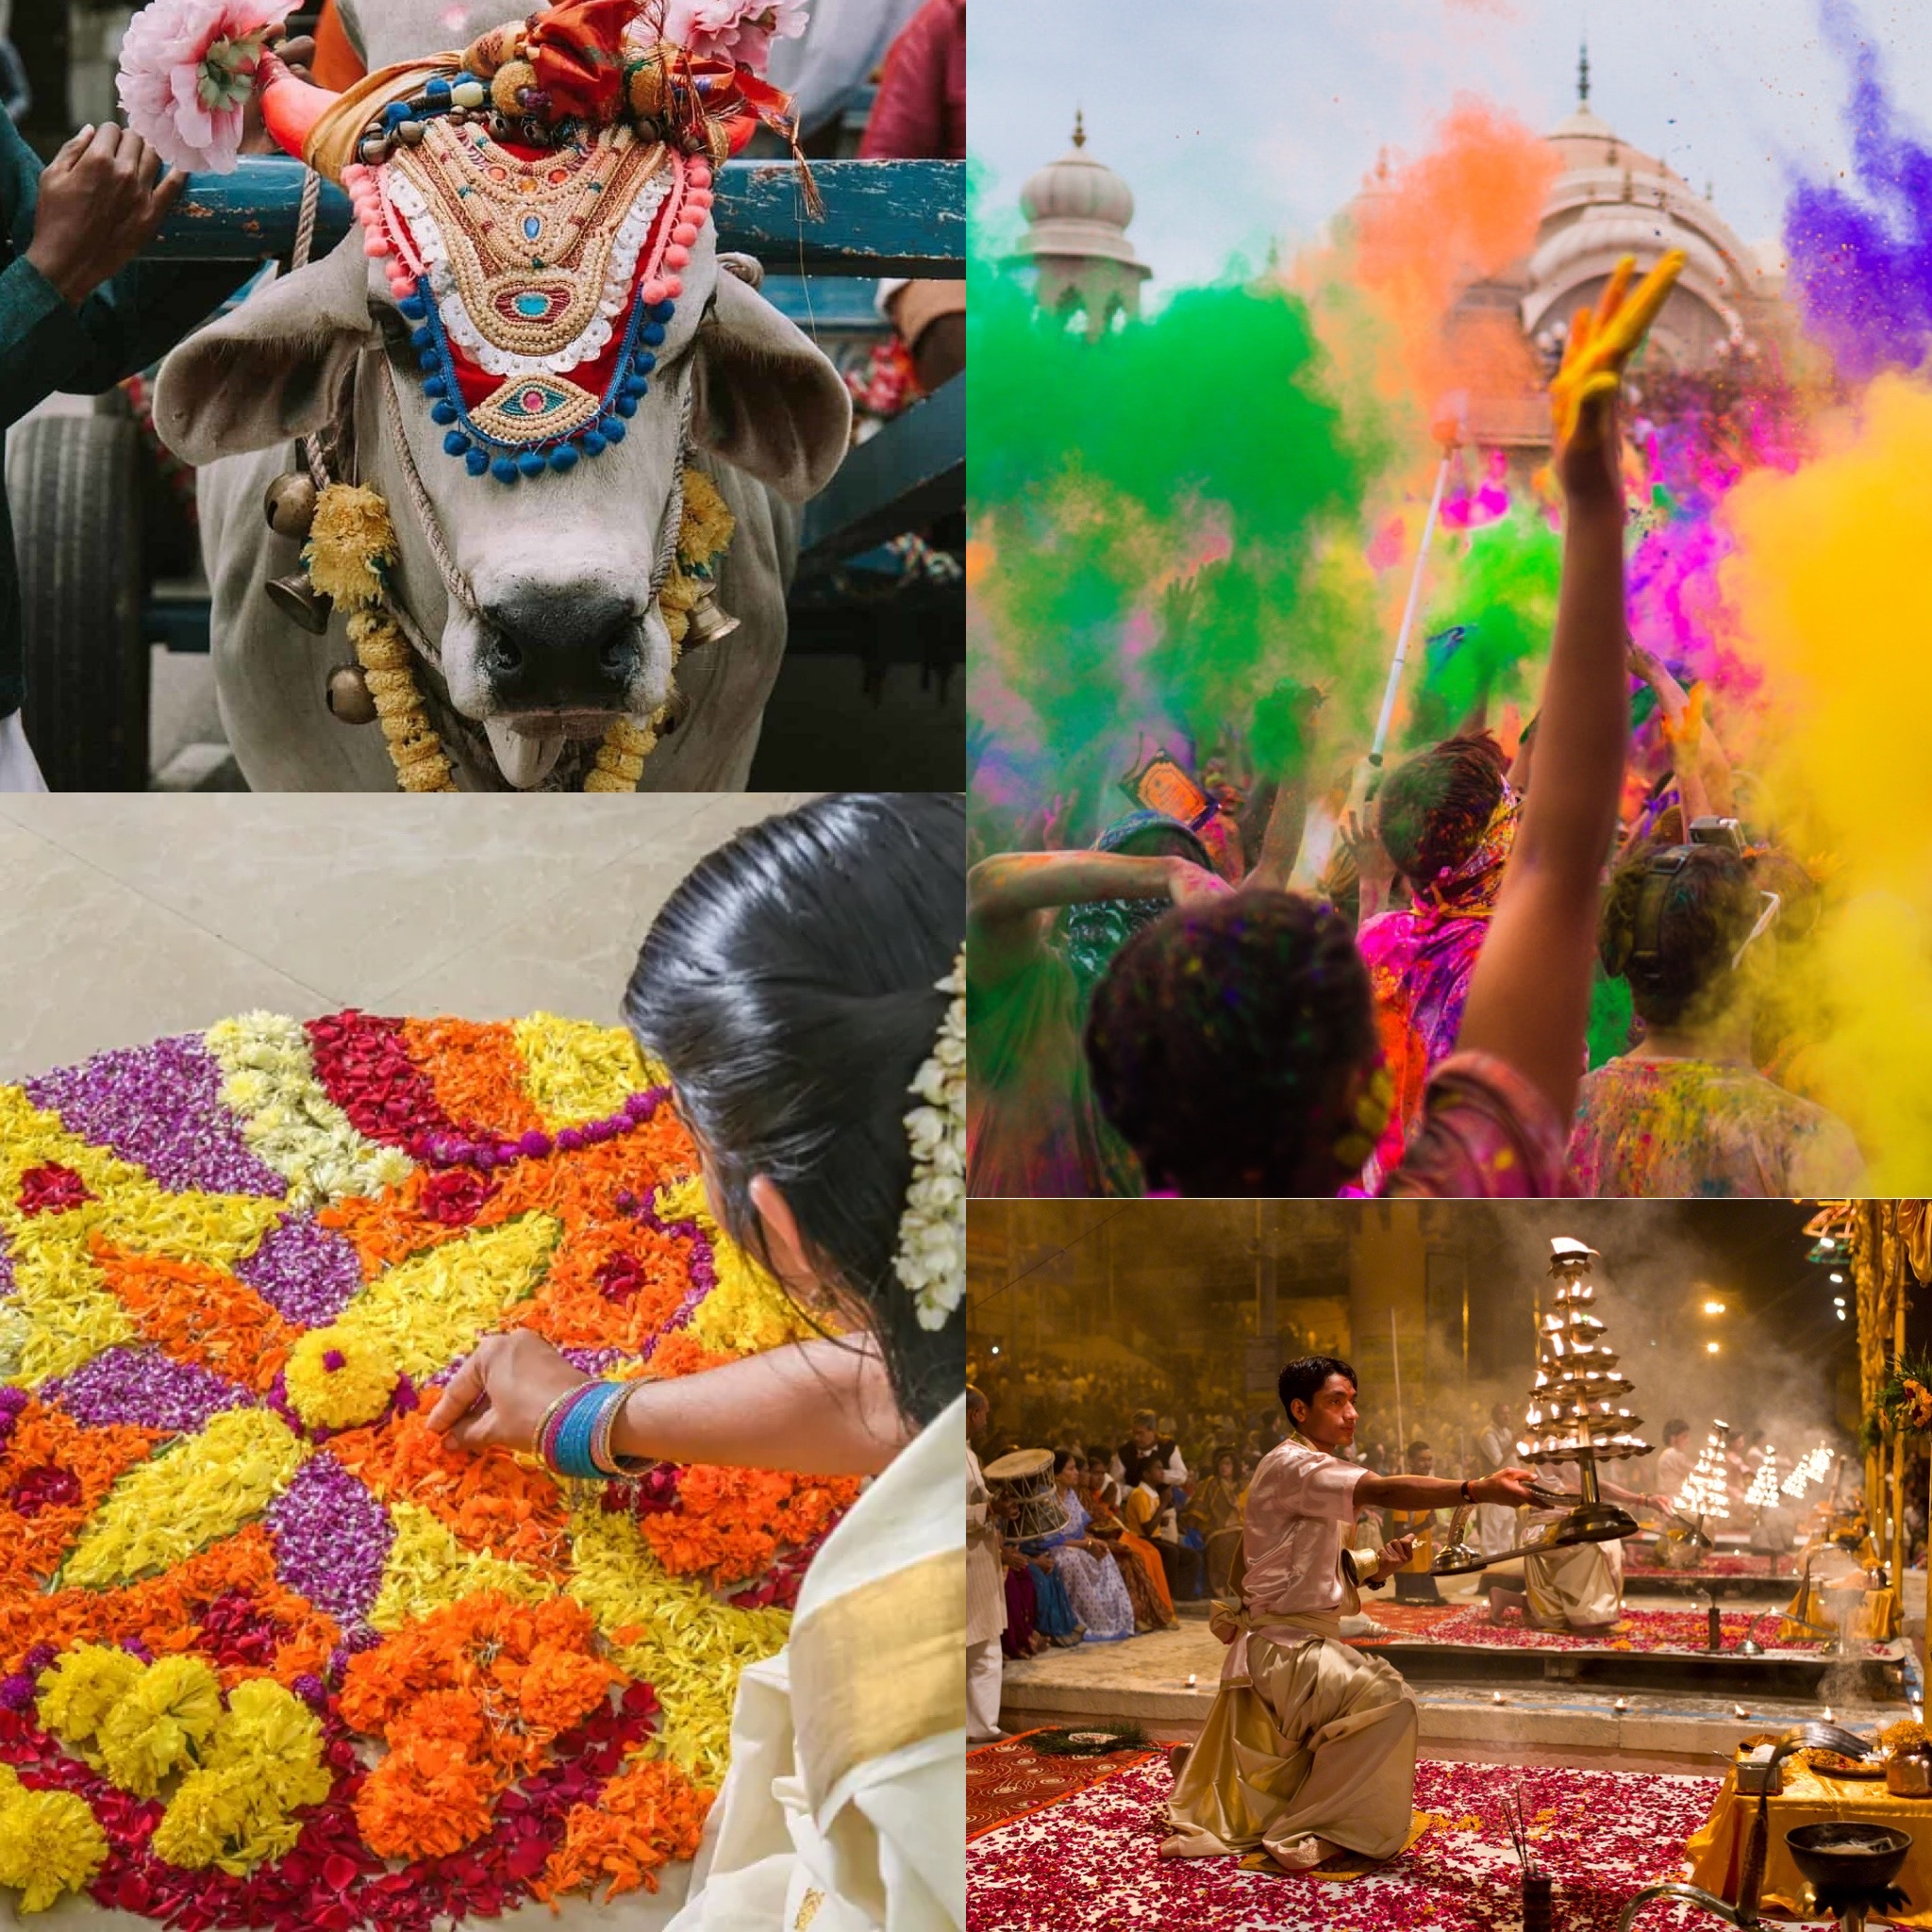 Folklore around the world: travel to india. Traditions, parties, habits and customs of one of the most fascinating places in the world.